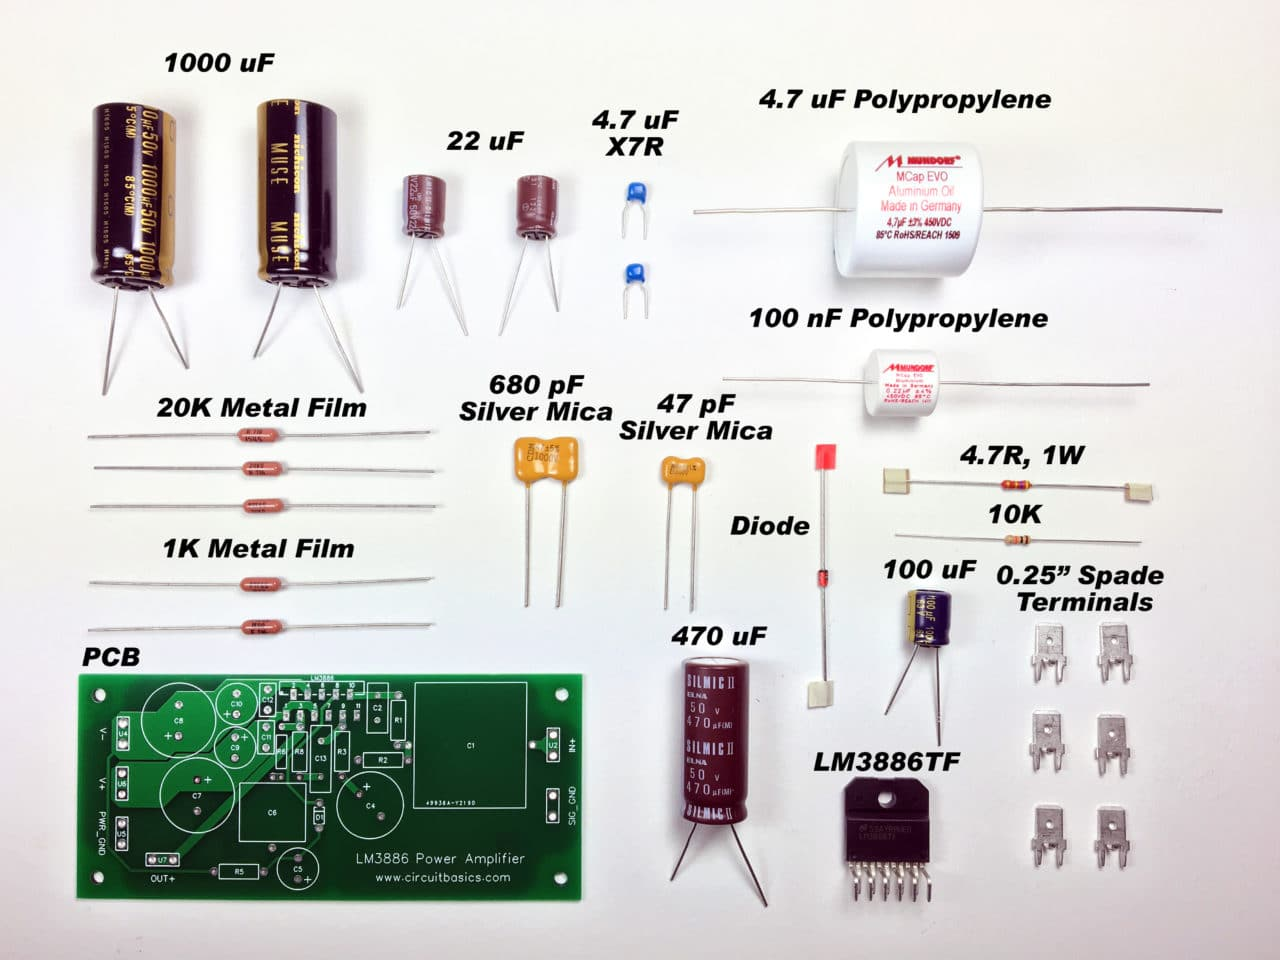 A Complete Guide to Design and Build a Hi-Fi LM3886